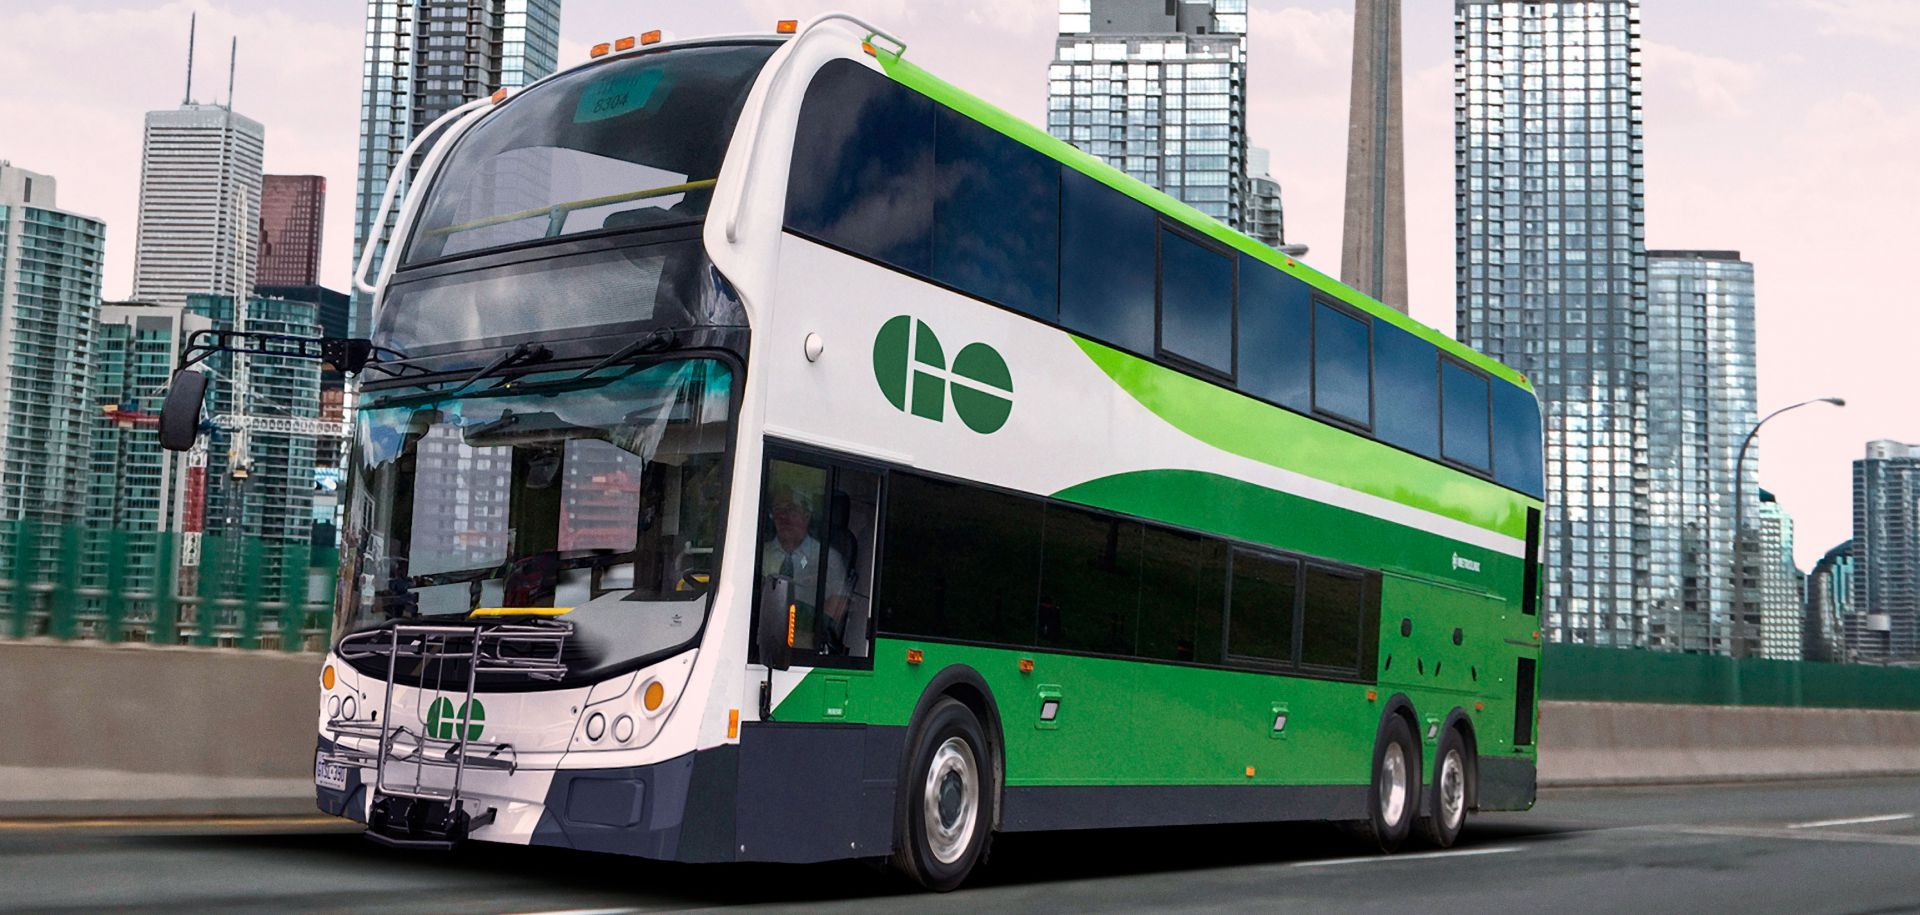 Enviro500 bus from Alexander Dennis Limited